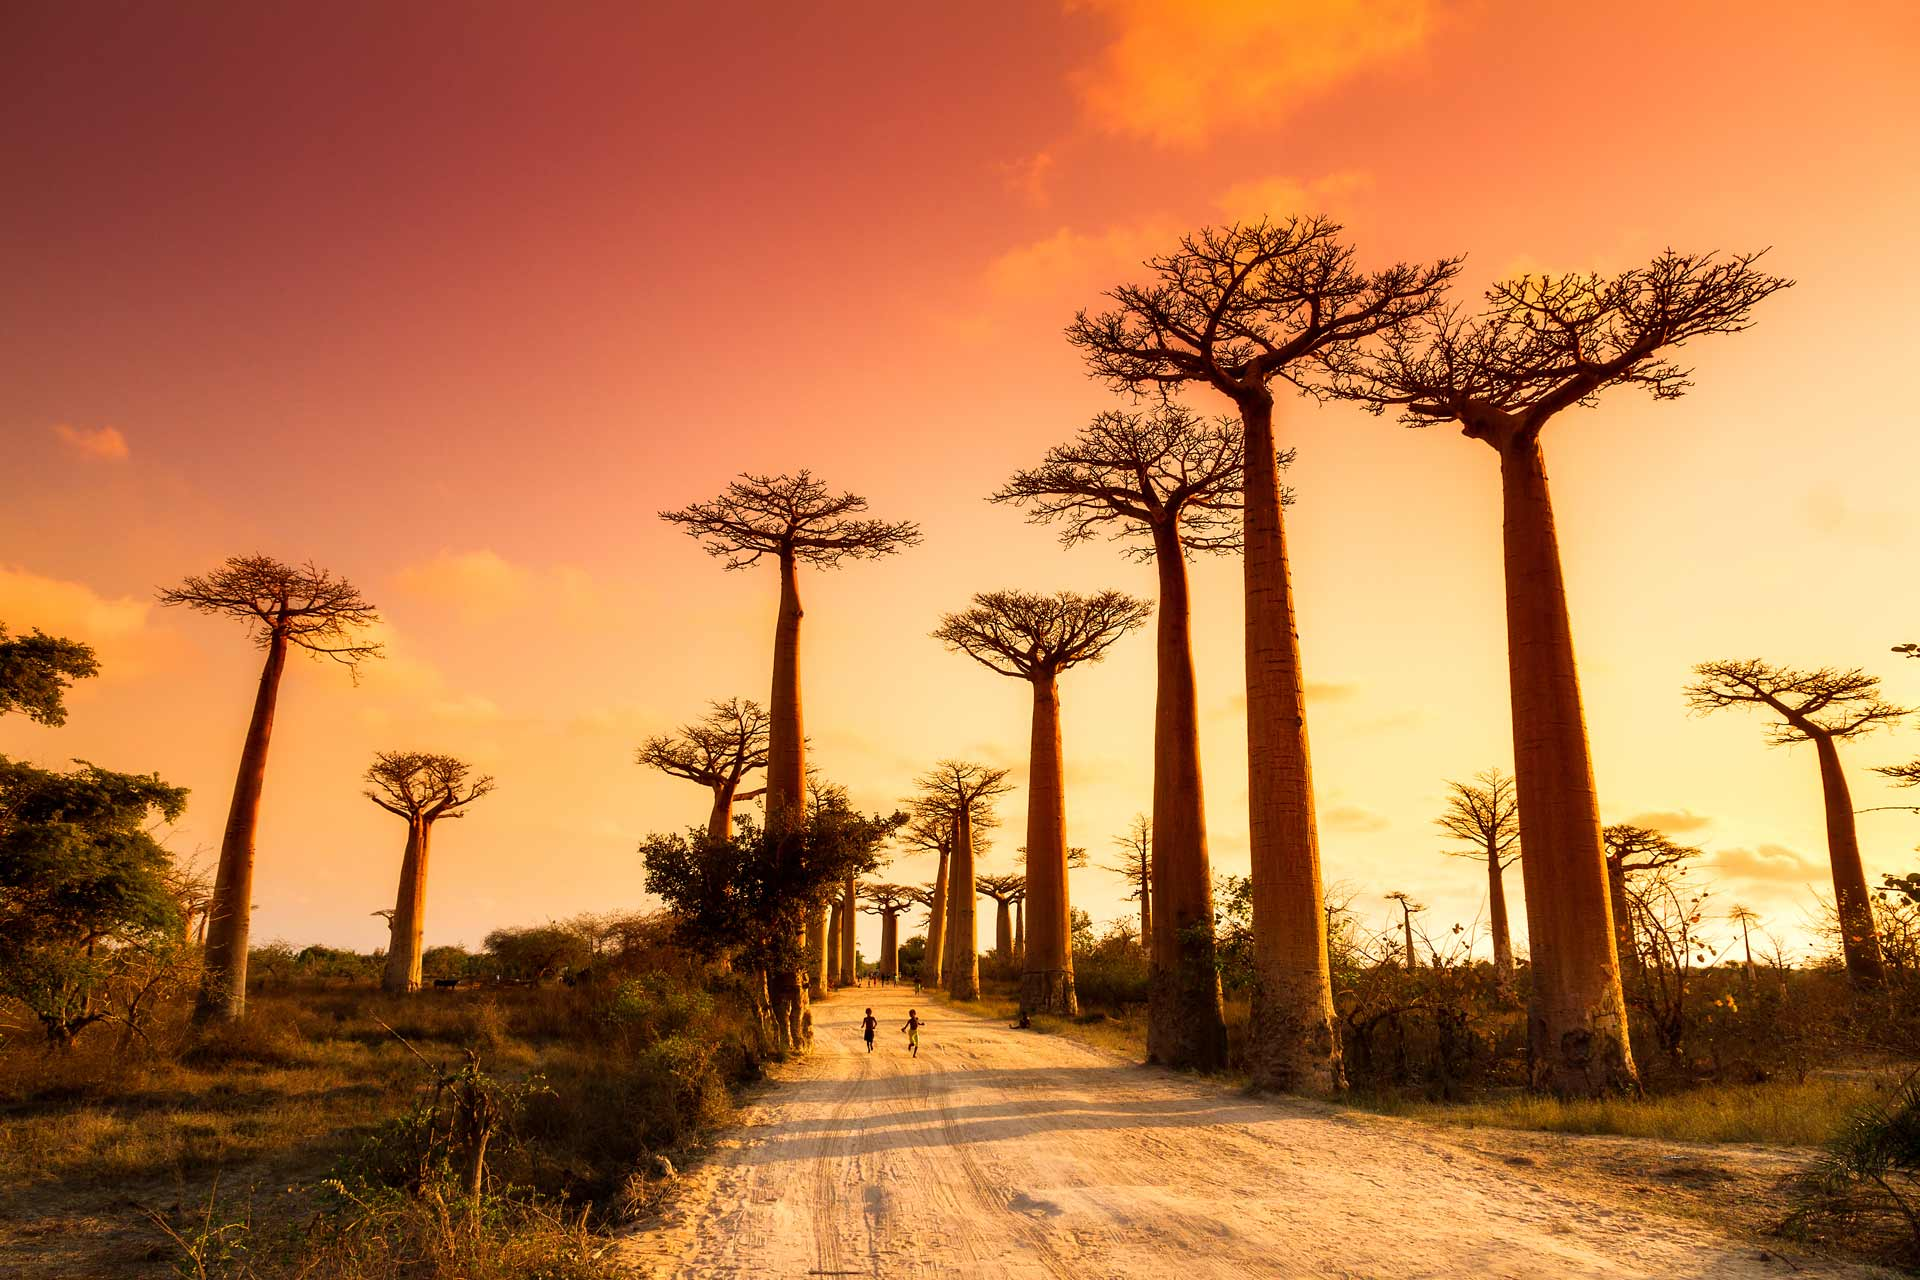 Beautiful Baobab trees at sunset at the avenue of the baobabs